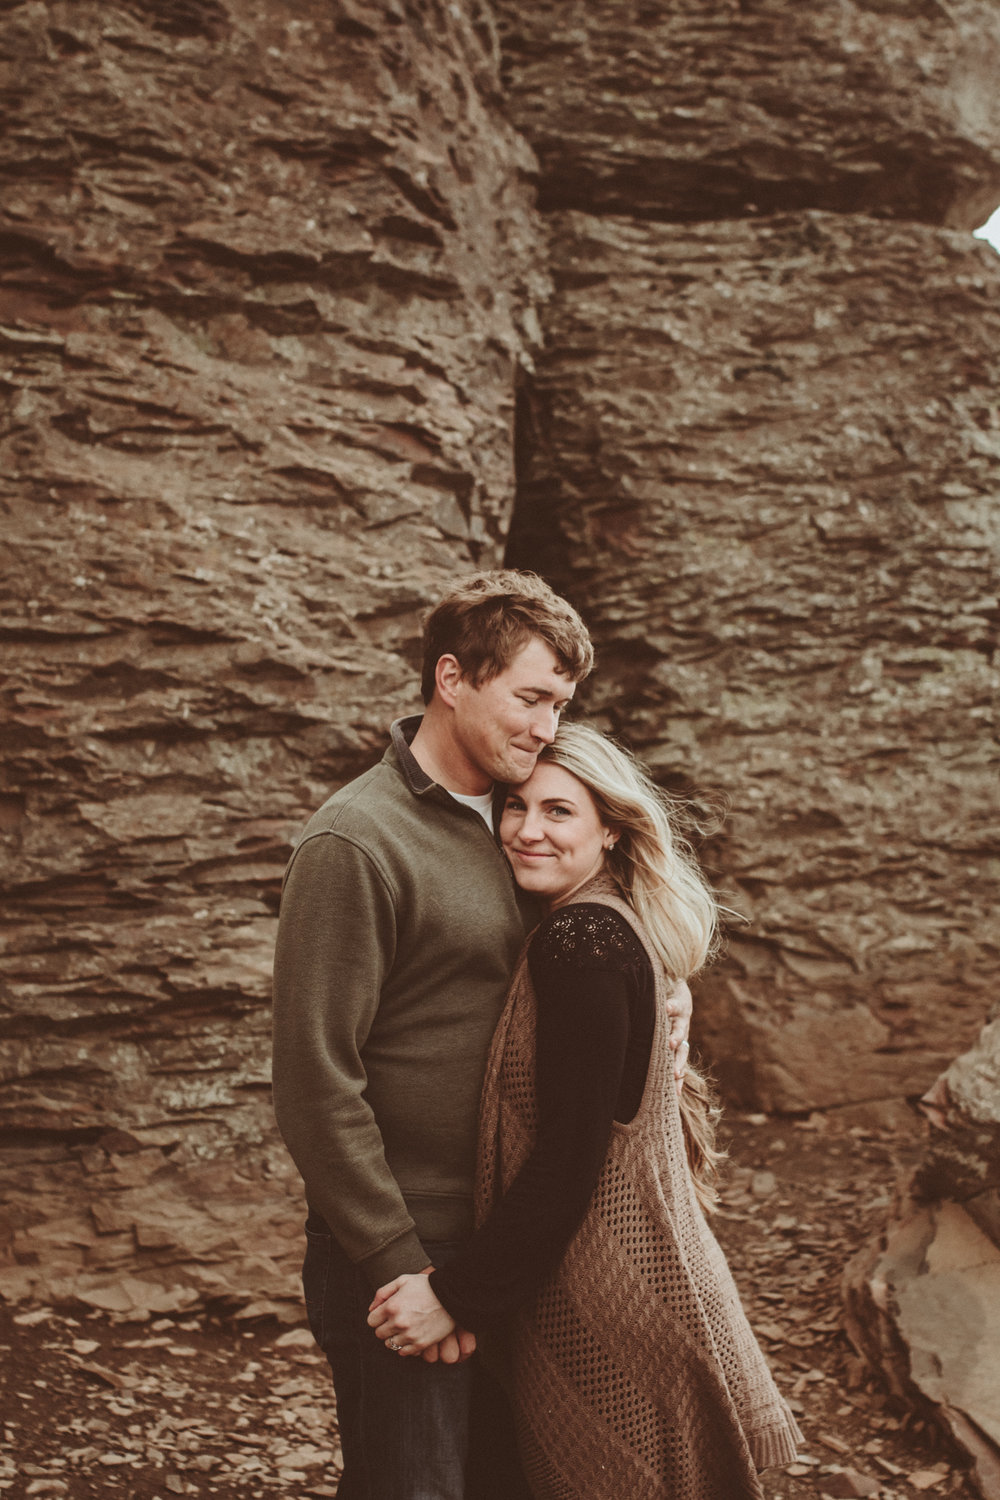 josh and anna | adventurous anniversary shoot | George washington | Christi Childs photography  (80 of 101).jpg